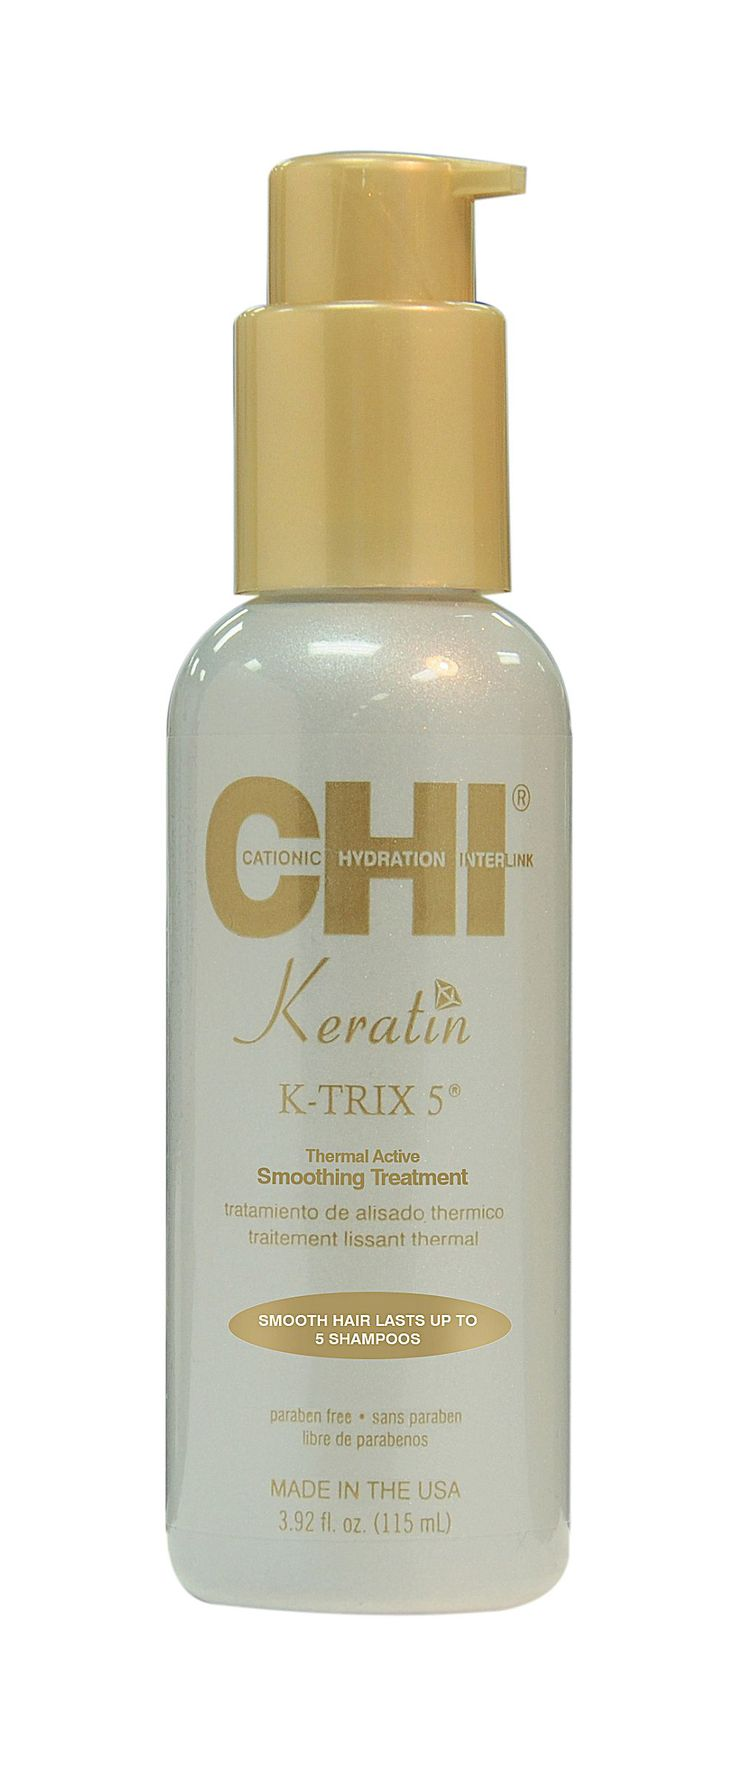 CHI Keratin K-TRIX 5 Thermal Active Smoothing Treatment 115ml,